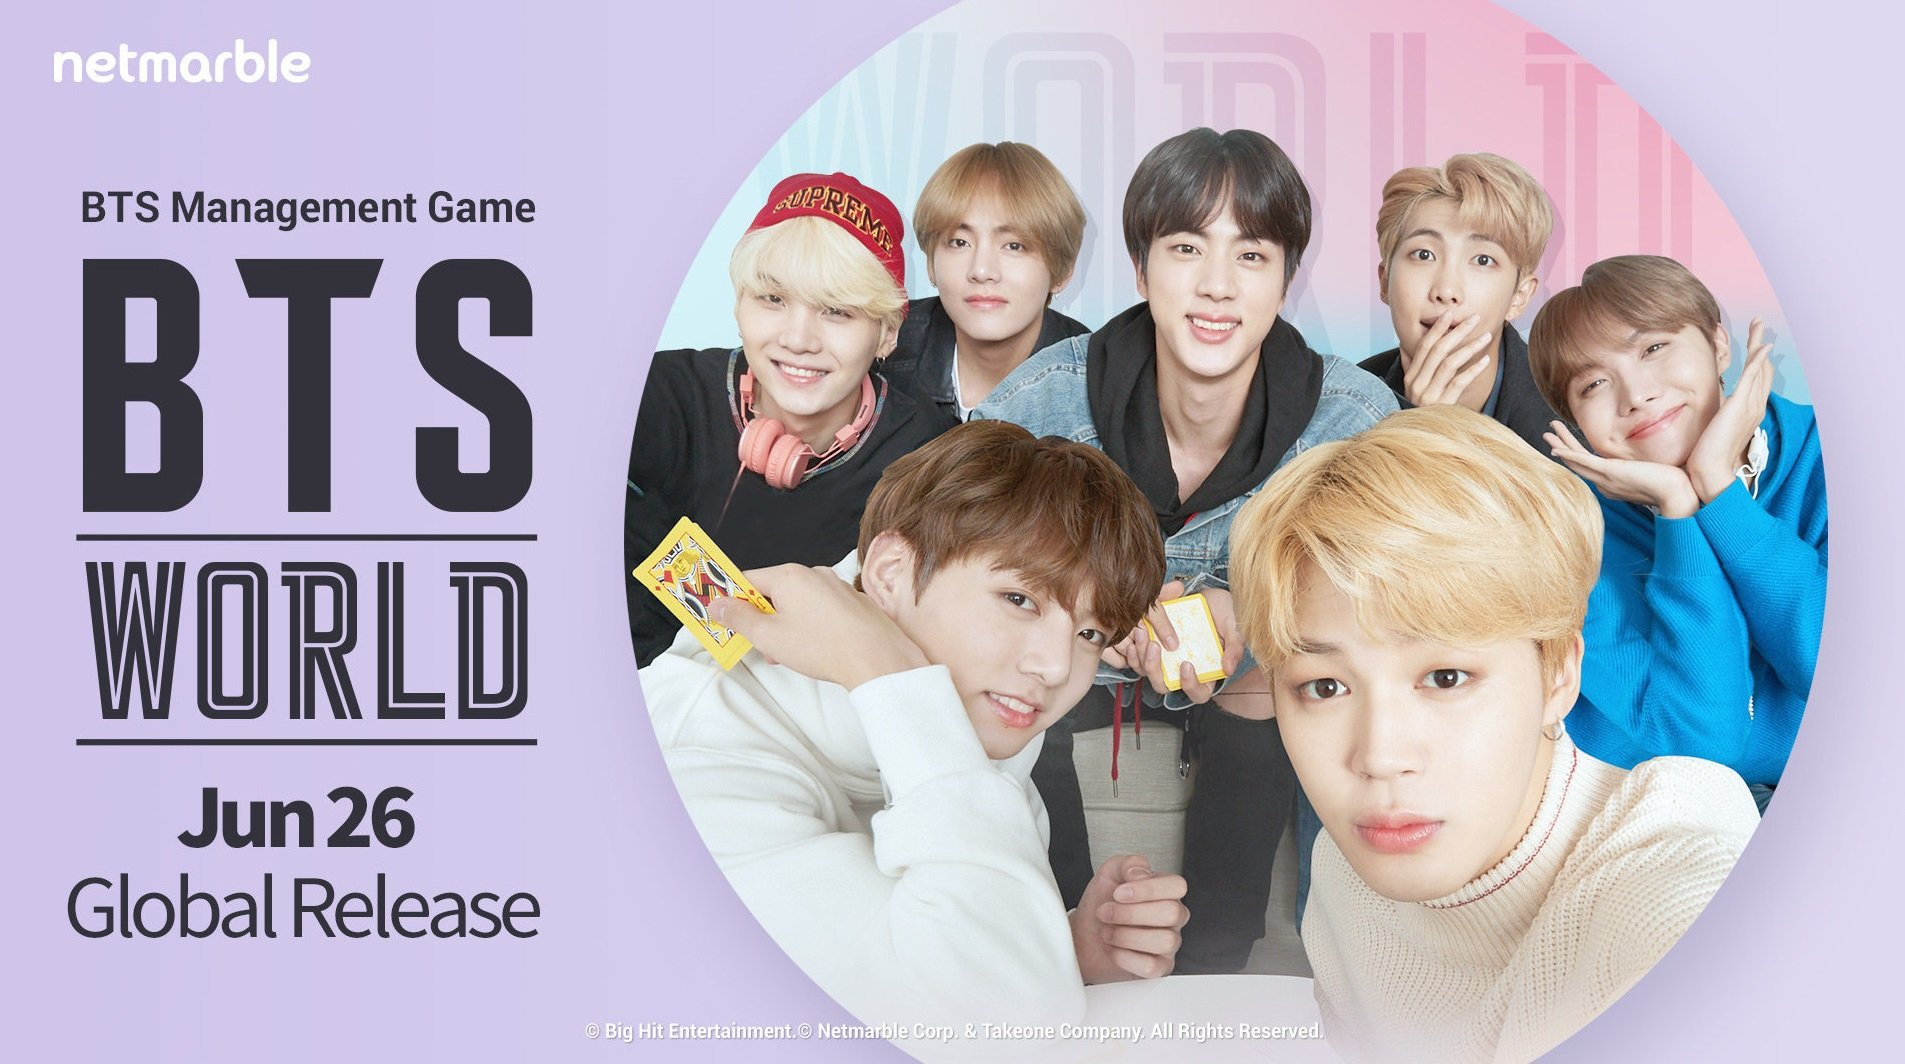 To listen to the exclusive song Heartbeat, you'll need to download the BTS World game for Android or iPhone.